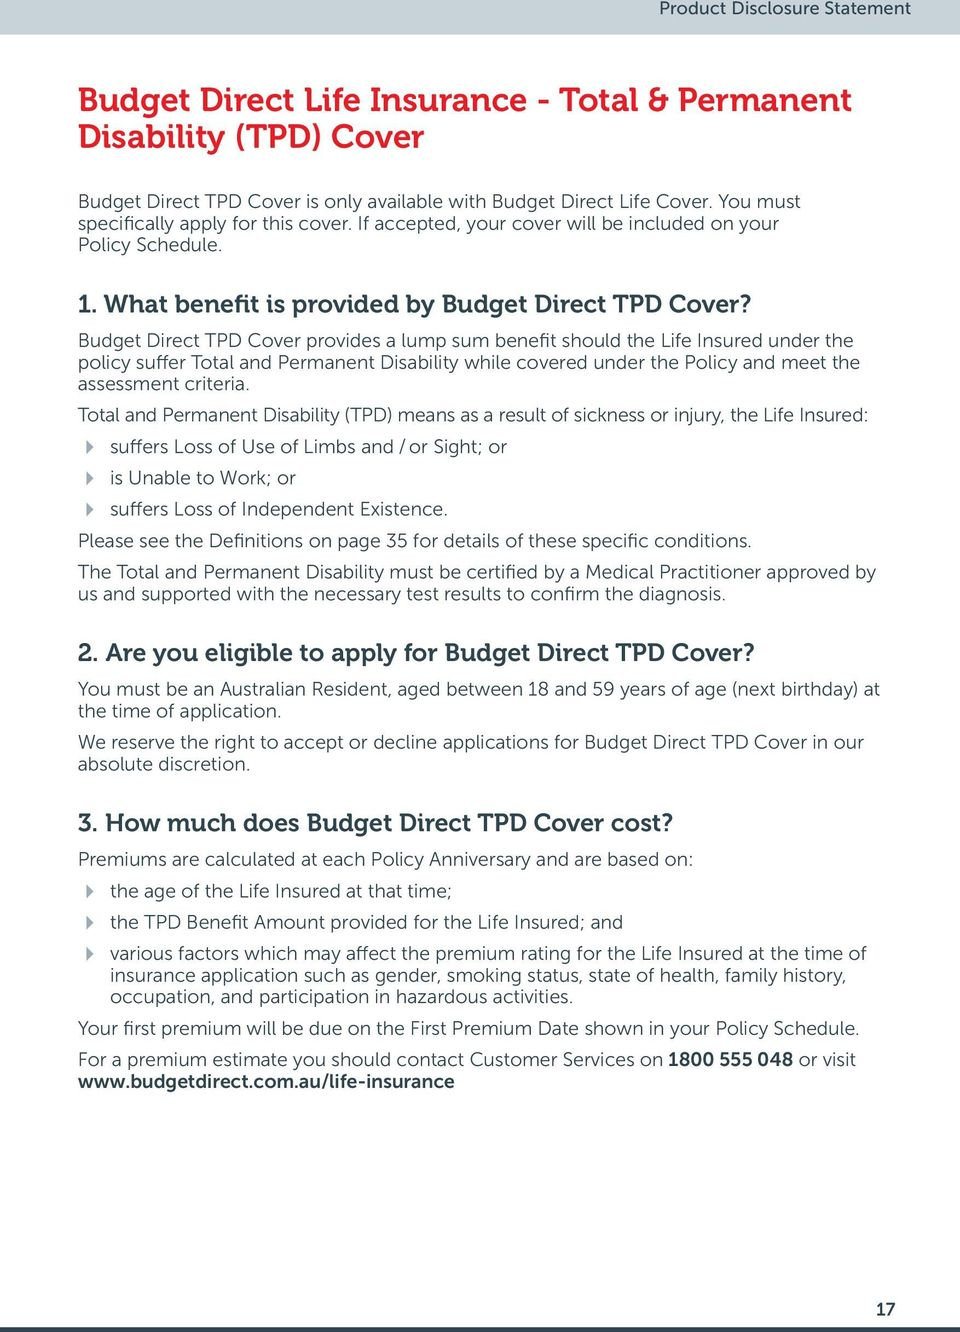 Budget Direct TPD Cover provides a lump sum benefit should the Life Insured under the policy suffer Total and Permanent Disability while covered under the Policy and meet the assessment criteria.